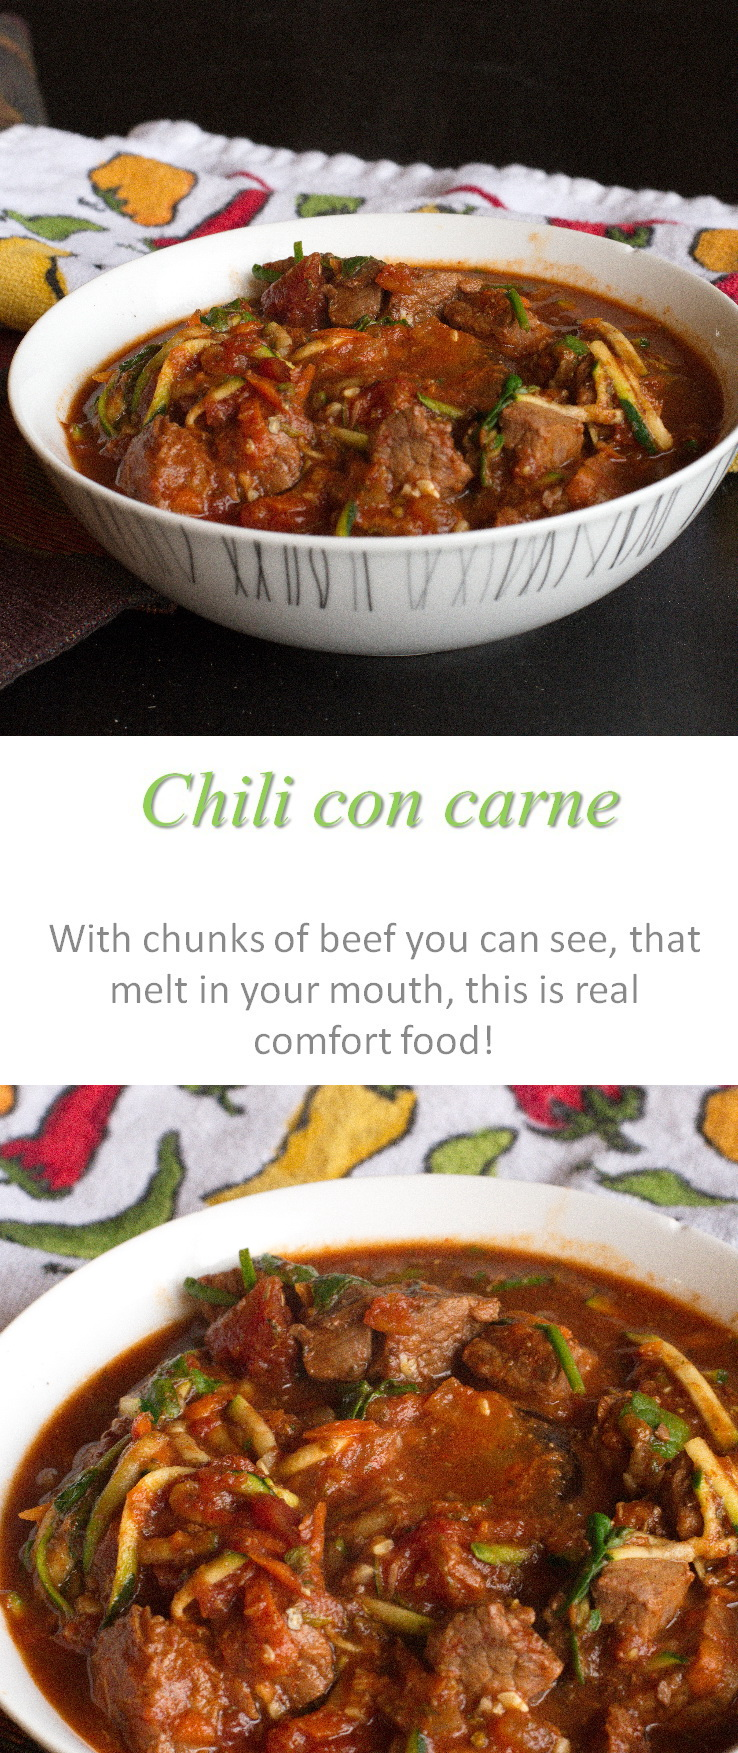 A really simple and yummy chili con carne recipe that you set and forget in the slow cooker, with chunks of tender, fall-off-the-fork beef. #chiliconcarne #cookathome #glutenfree #dairyfree